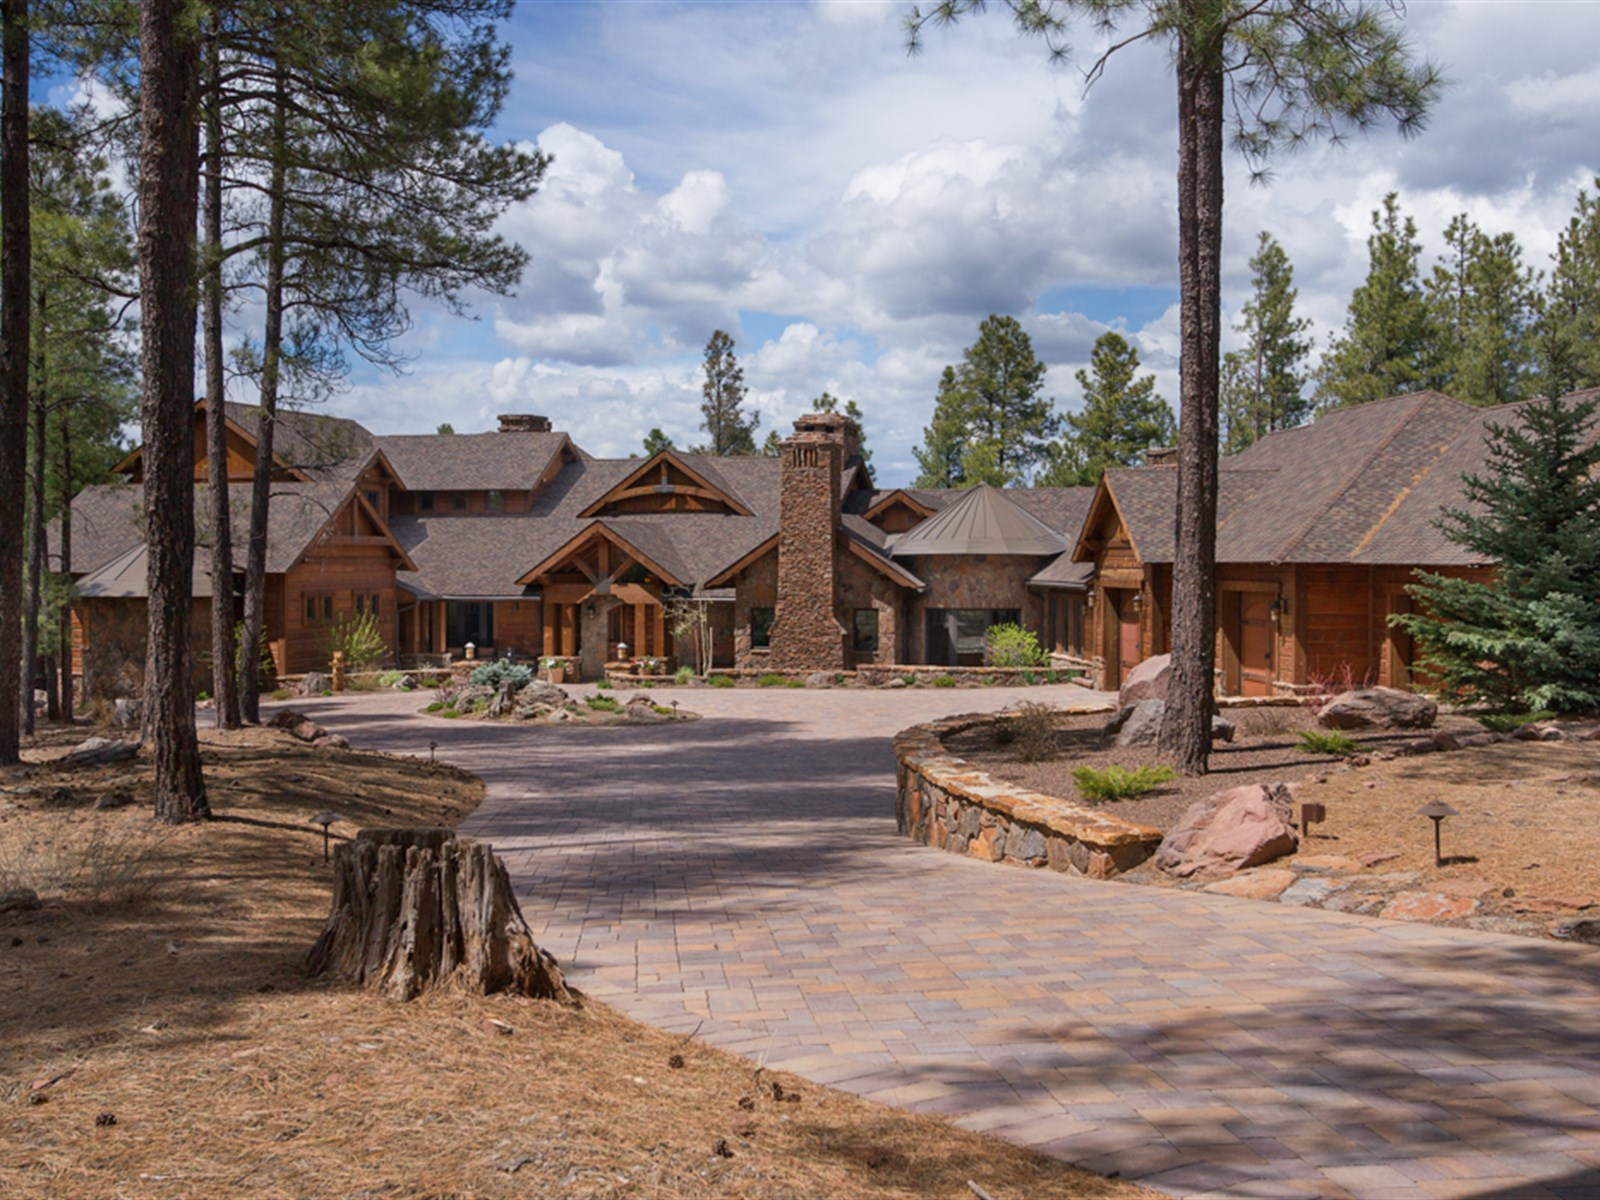 Single Family Home for Sale at The ''Crown Jewel'' of Forest Highlands 2670 Andrew Douglass Flagstaff, Arizona 86005 United States